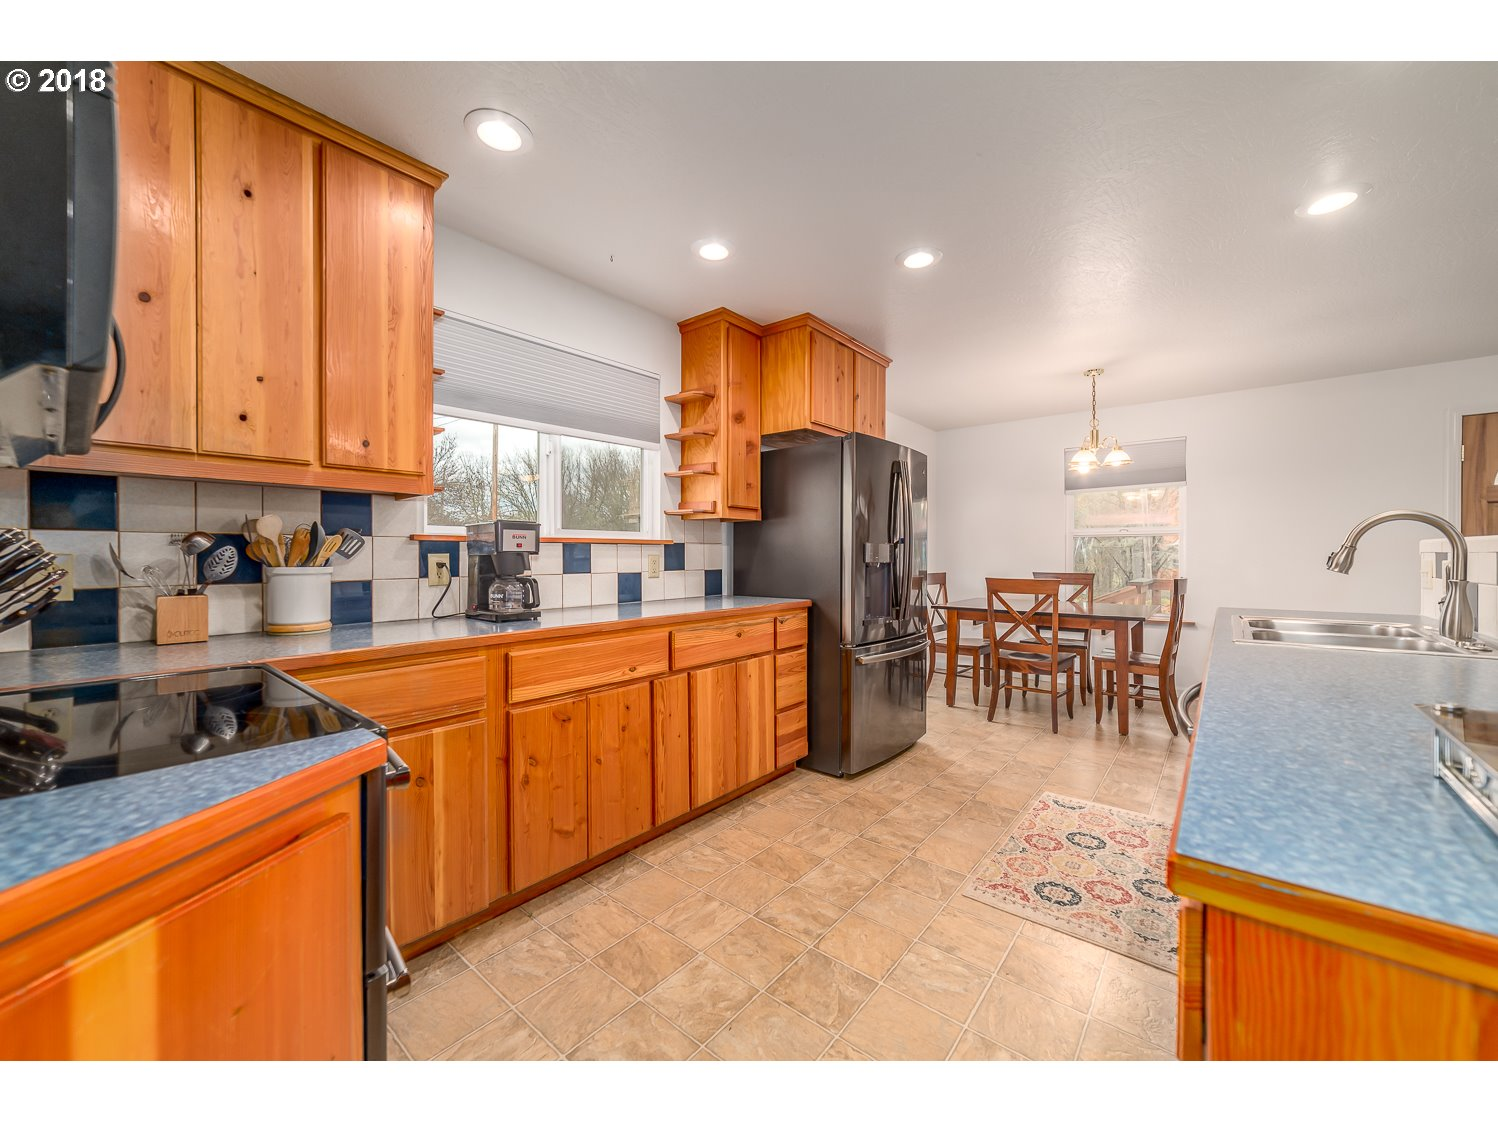 73518 ABEENE LN Cottage Grove, OR 97424 - MLS #: 18598503